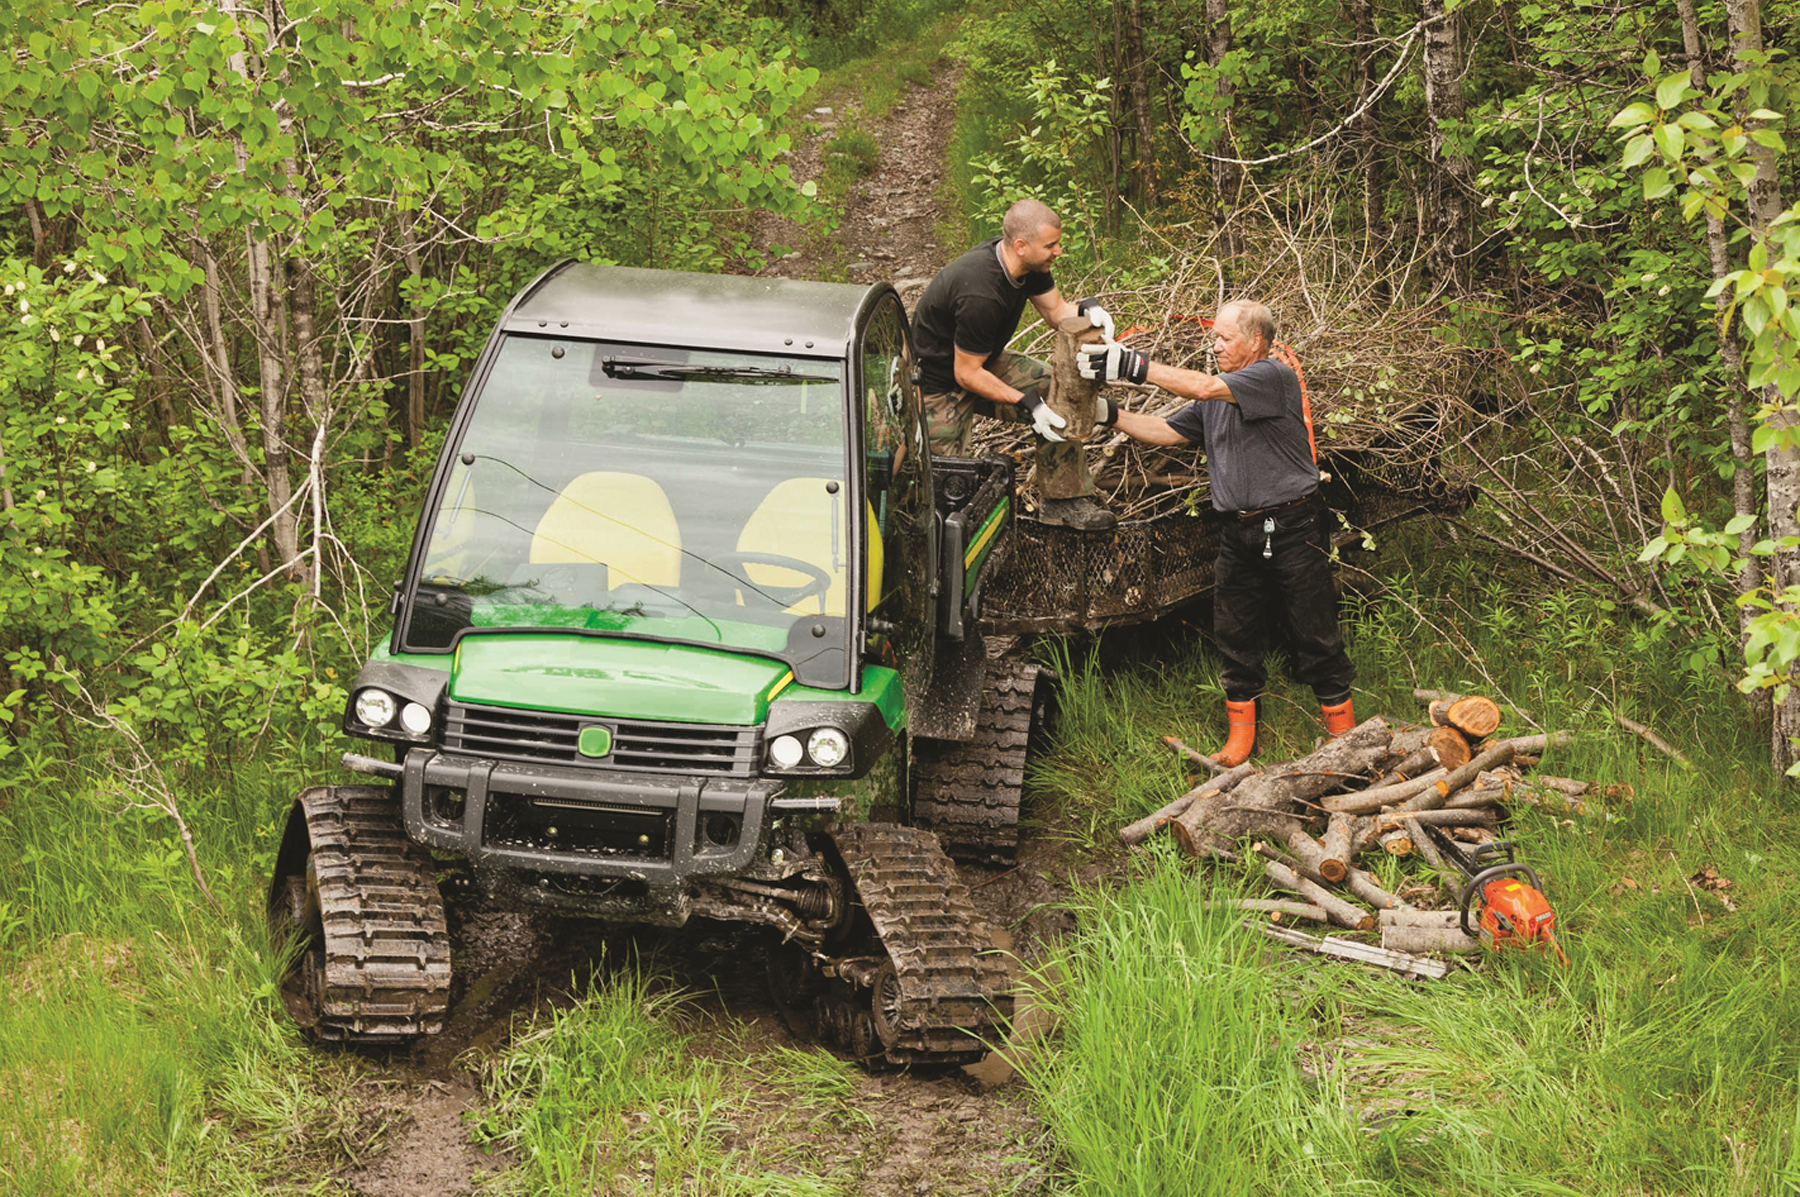 john deere launches tracked version of the gator - agriland.ie